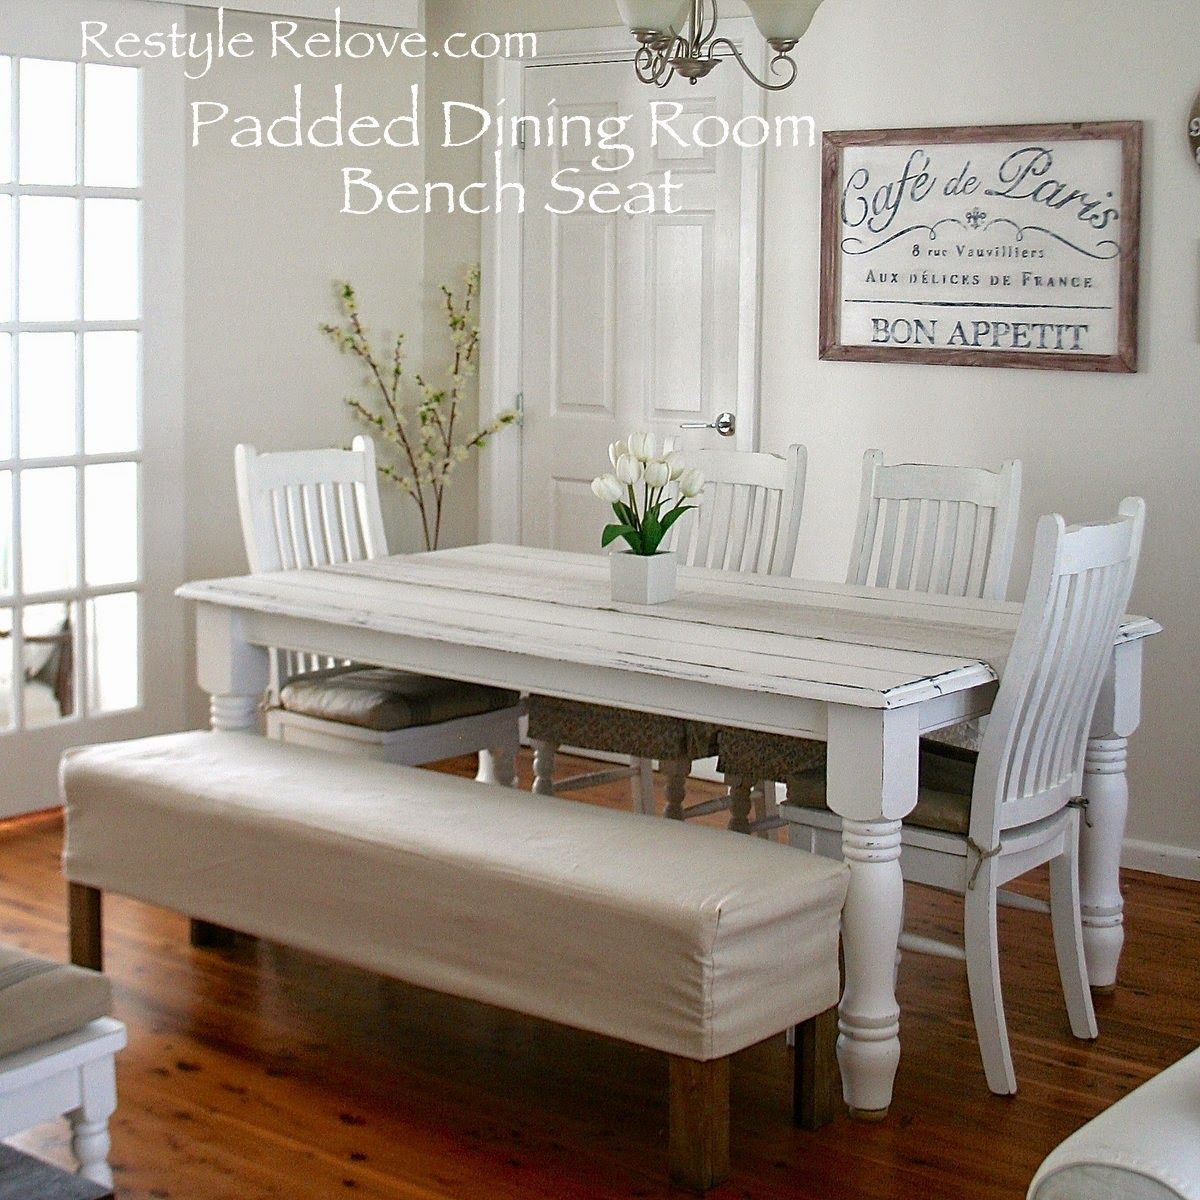 Restyle Relove: Padded Dining Room Bench Seat with Removable ...